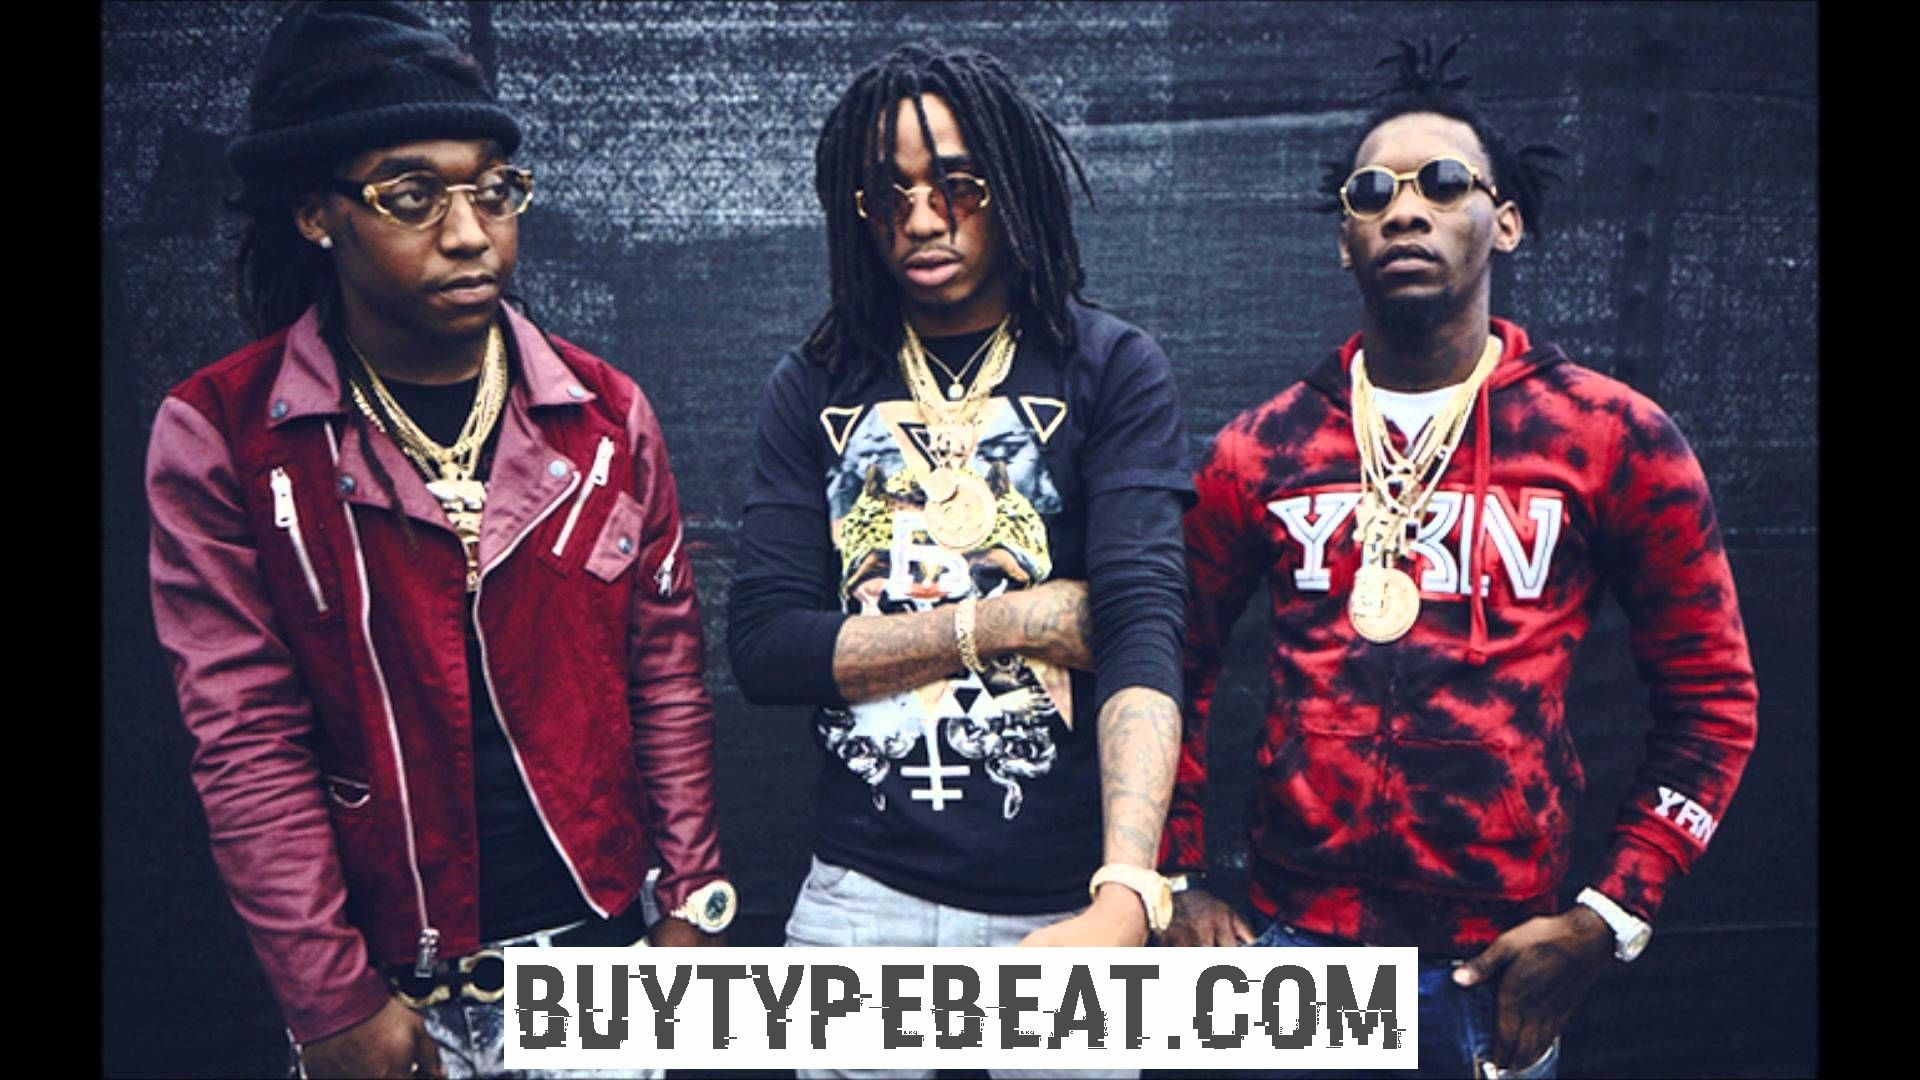 #Nyc So Migos  Bad And Boujee Ft Lil Uzi